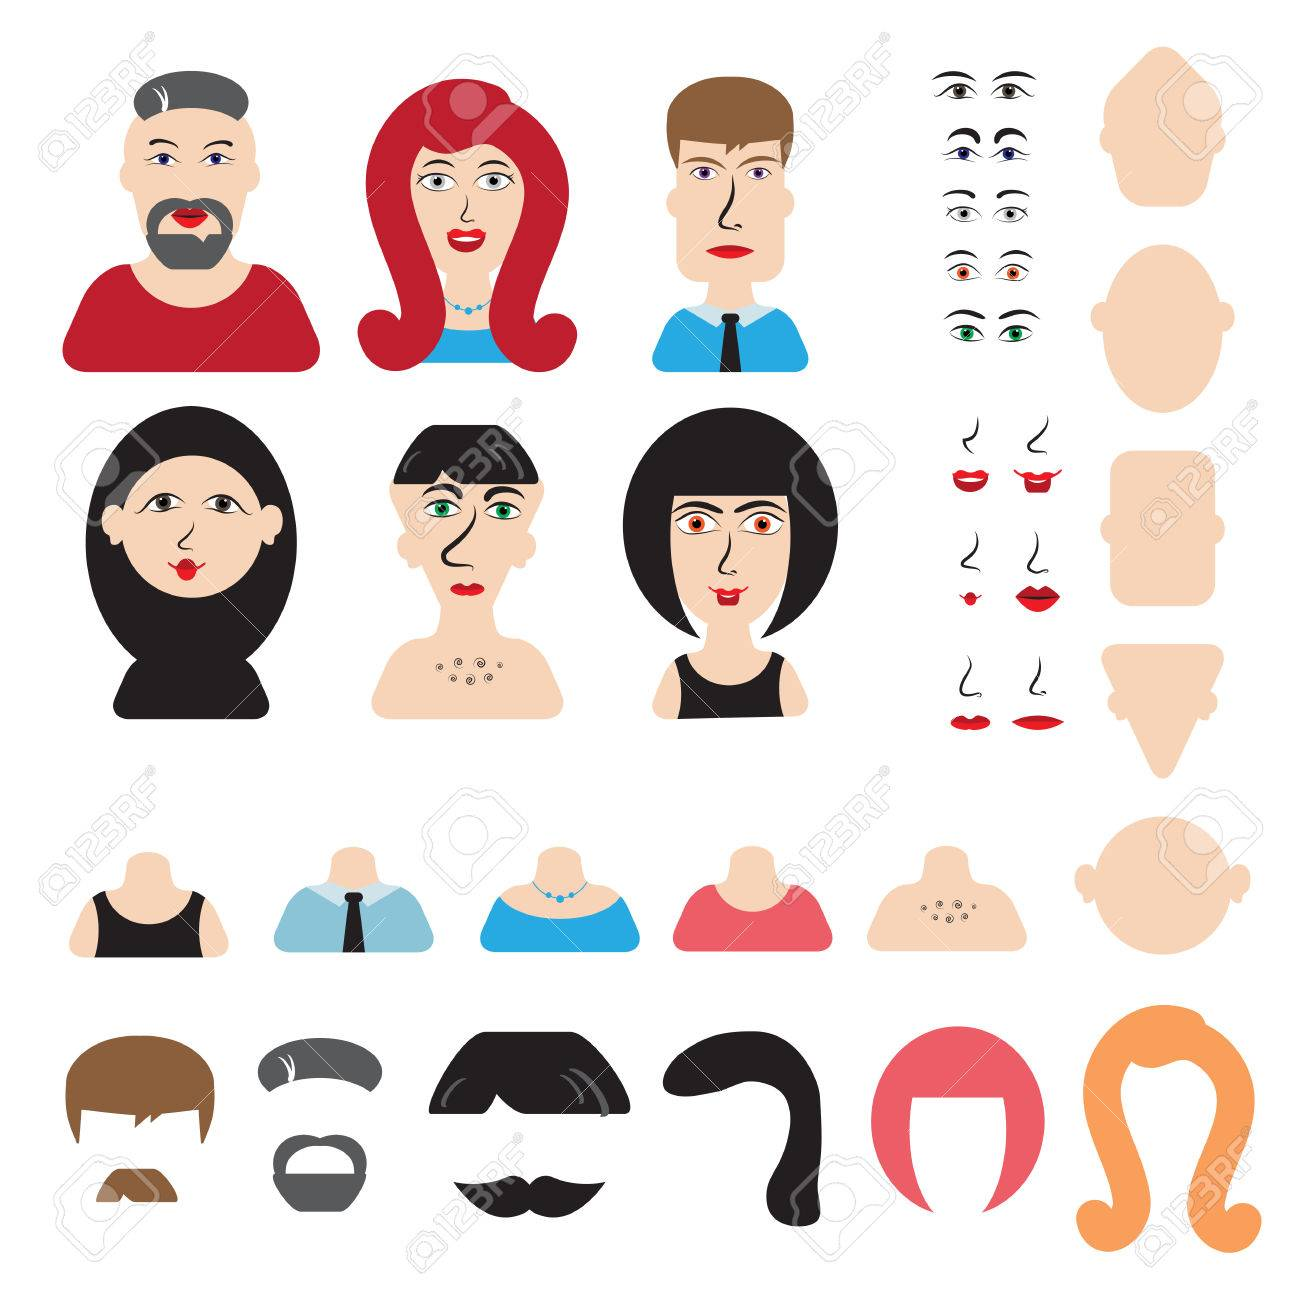 Men And Women Head And Face Constructor Or Avatar Constructor Royalty Free Cliparts Vectors And Stock Illustration Image 54701793